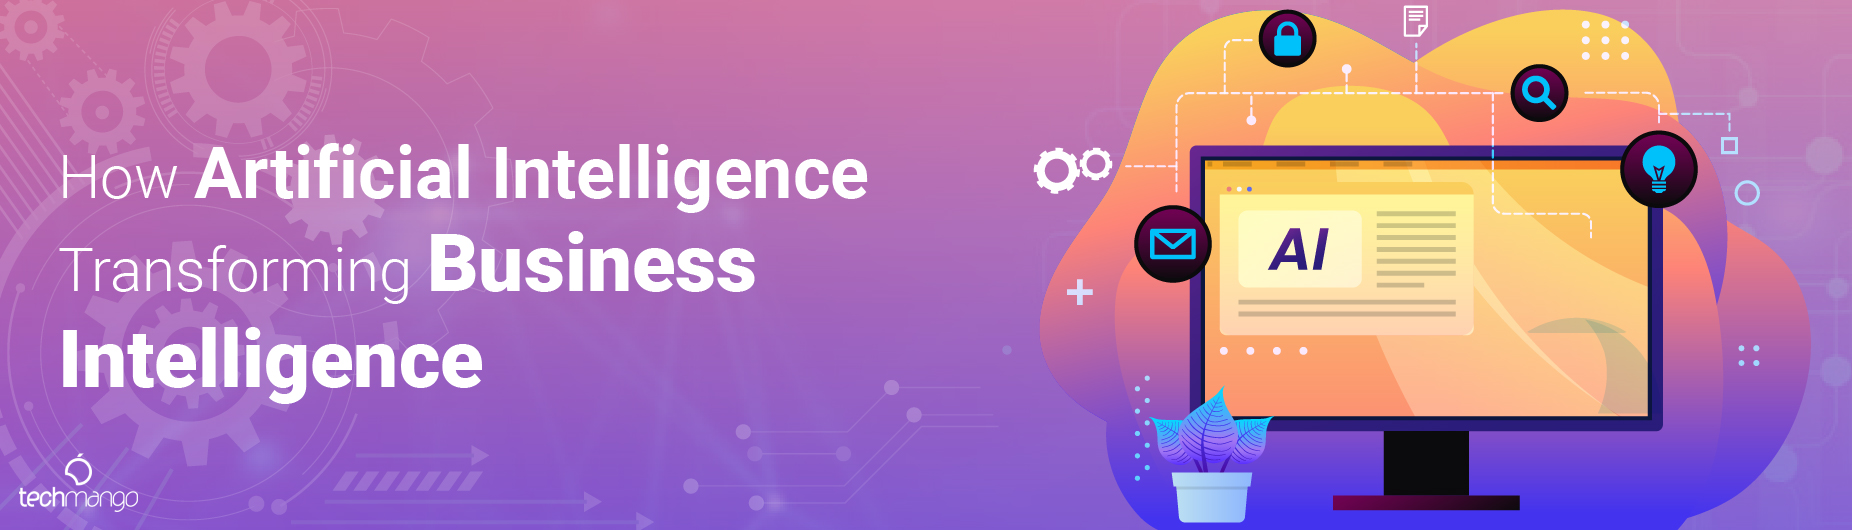 Impact of Artificial Intelligence on Business Intelligence